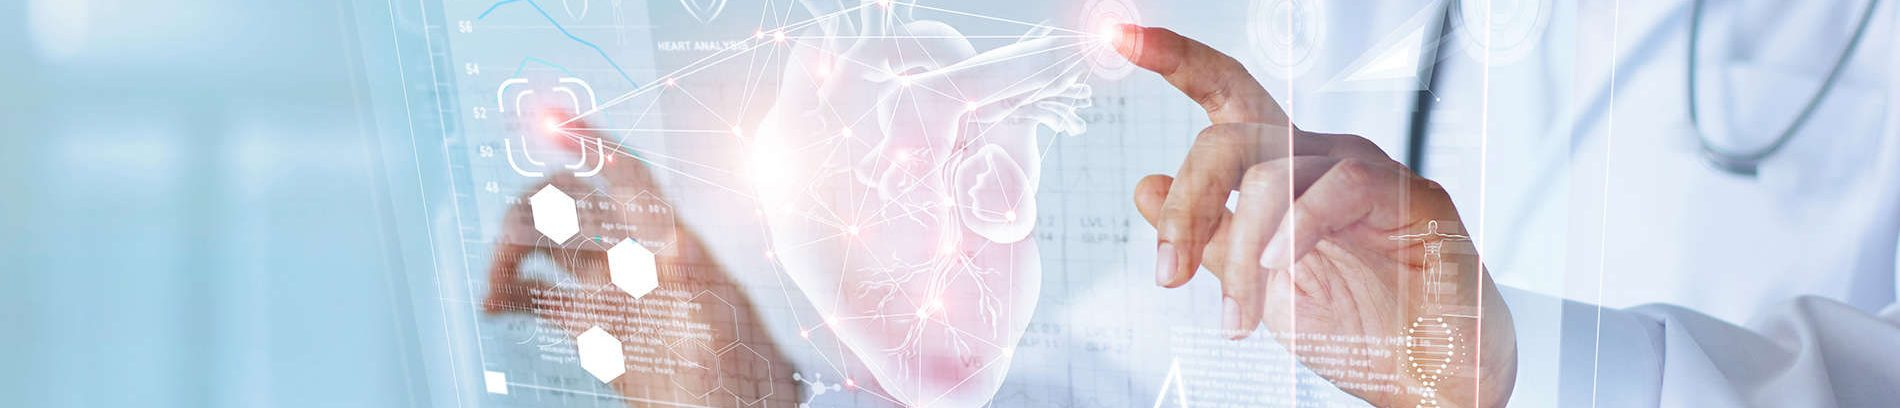 Physician with heart hologram